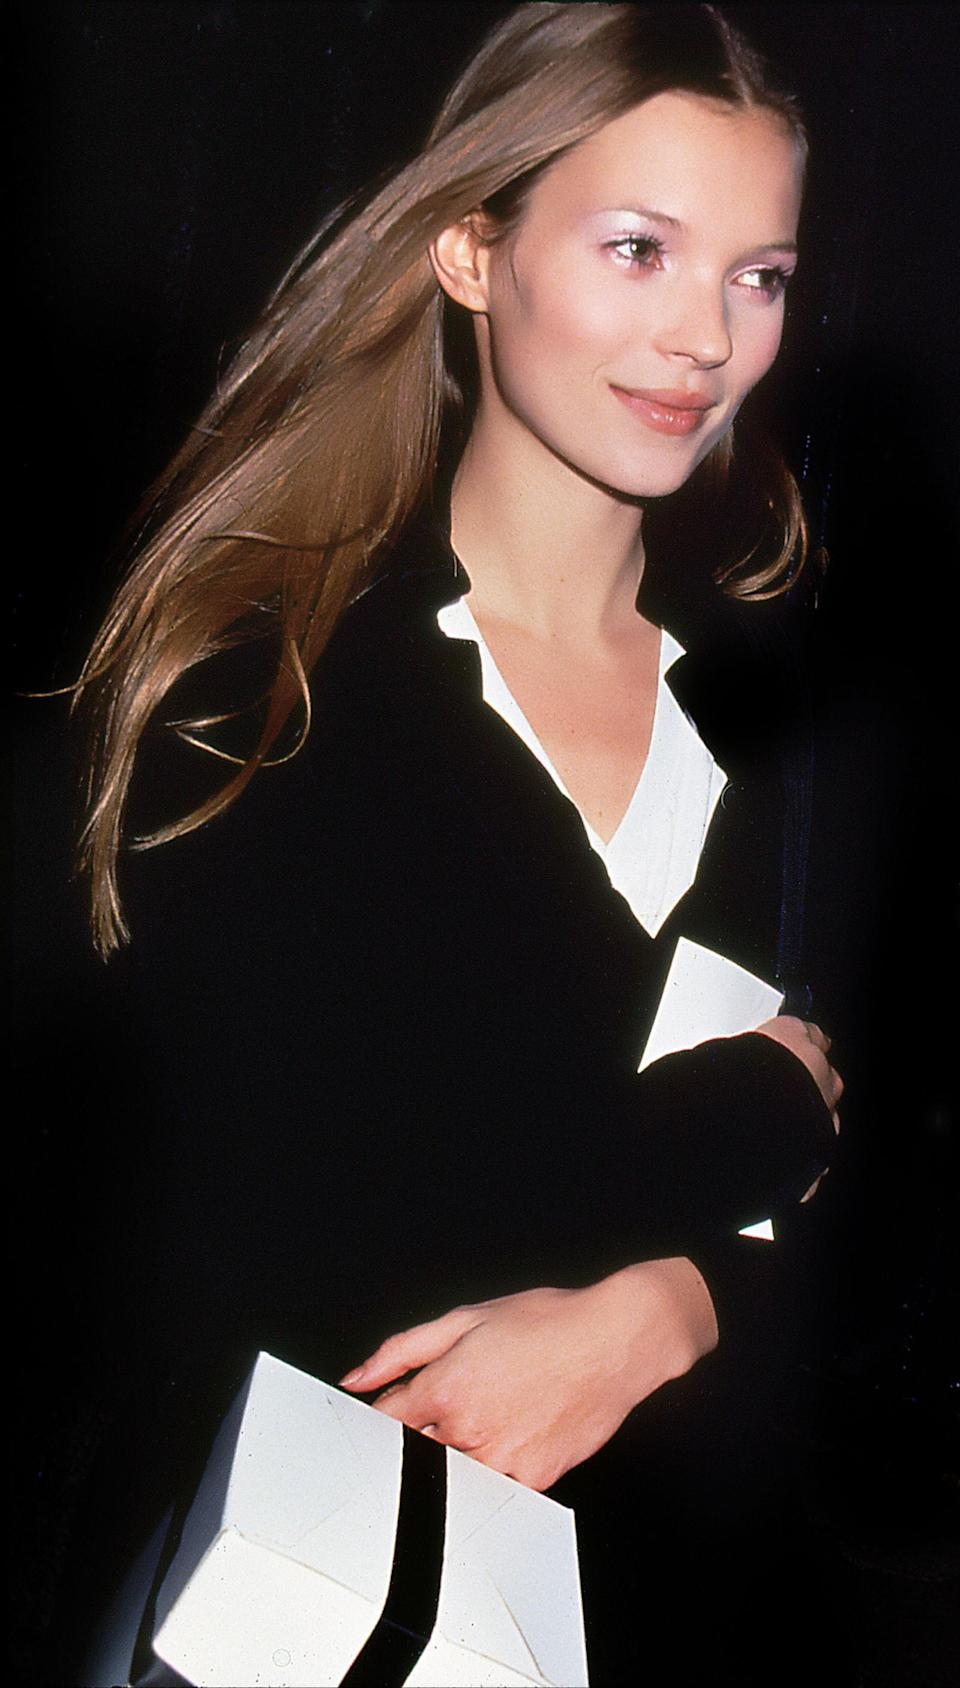 <p>Kate Moss opts for a black and white outfit for a Bryant Park Fashion Event, 1995</p>